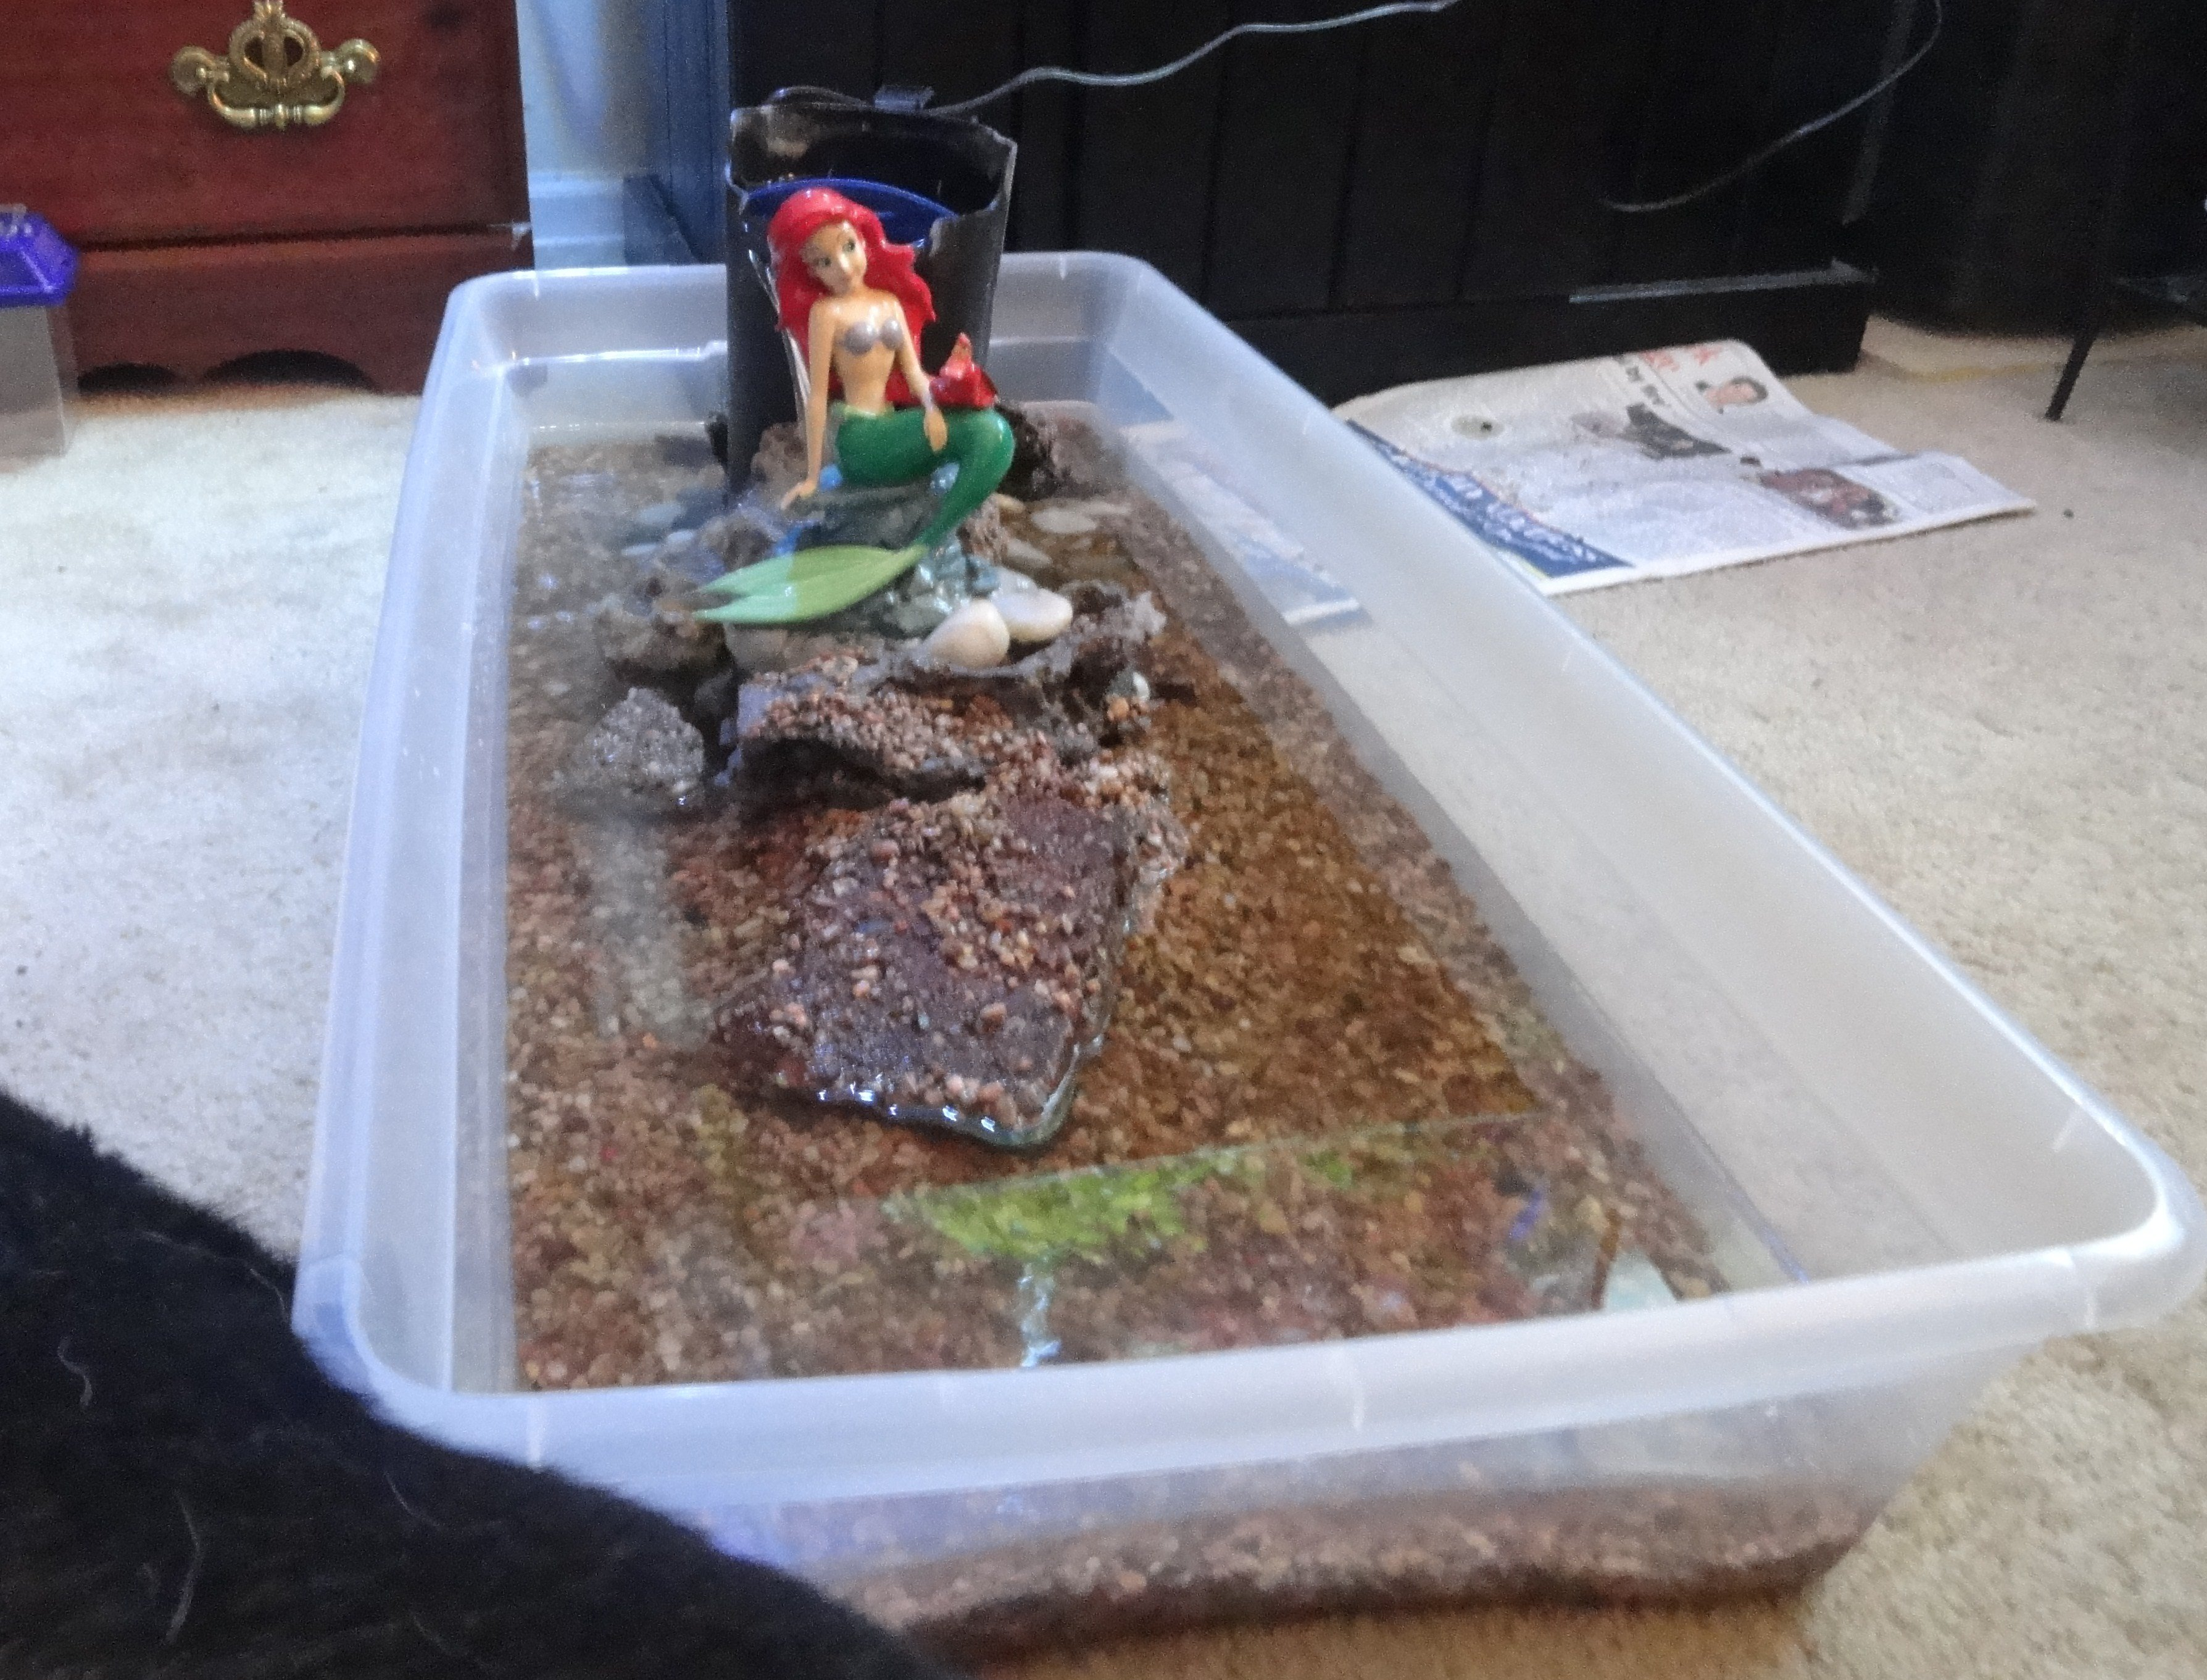 ... that hillbilly is crazy you can tell it s a little girls turtle tank